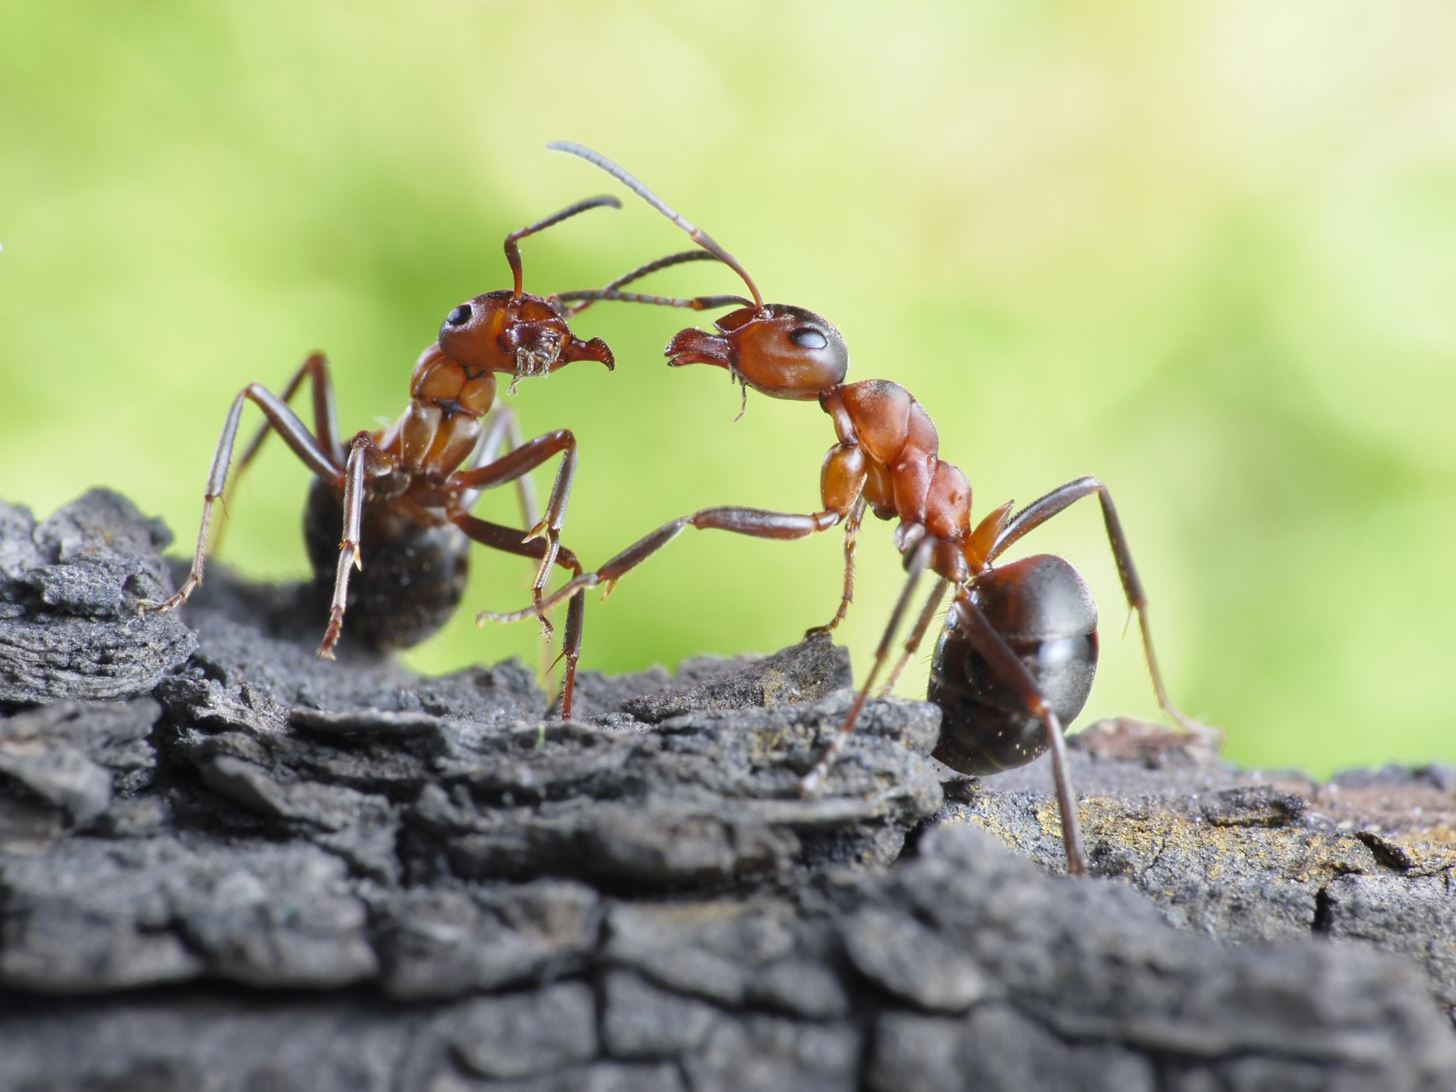 Amazing Insects: Ants Create Chemical Cocktails to Brew Antibiotics